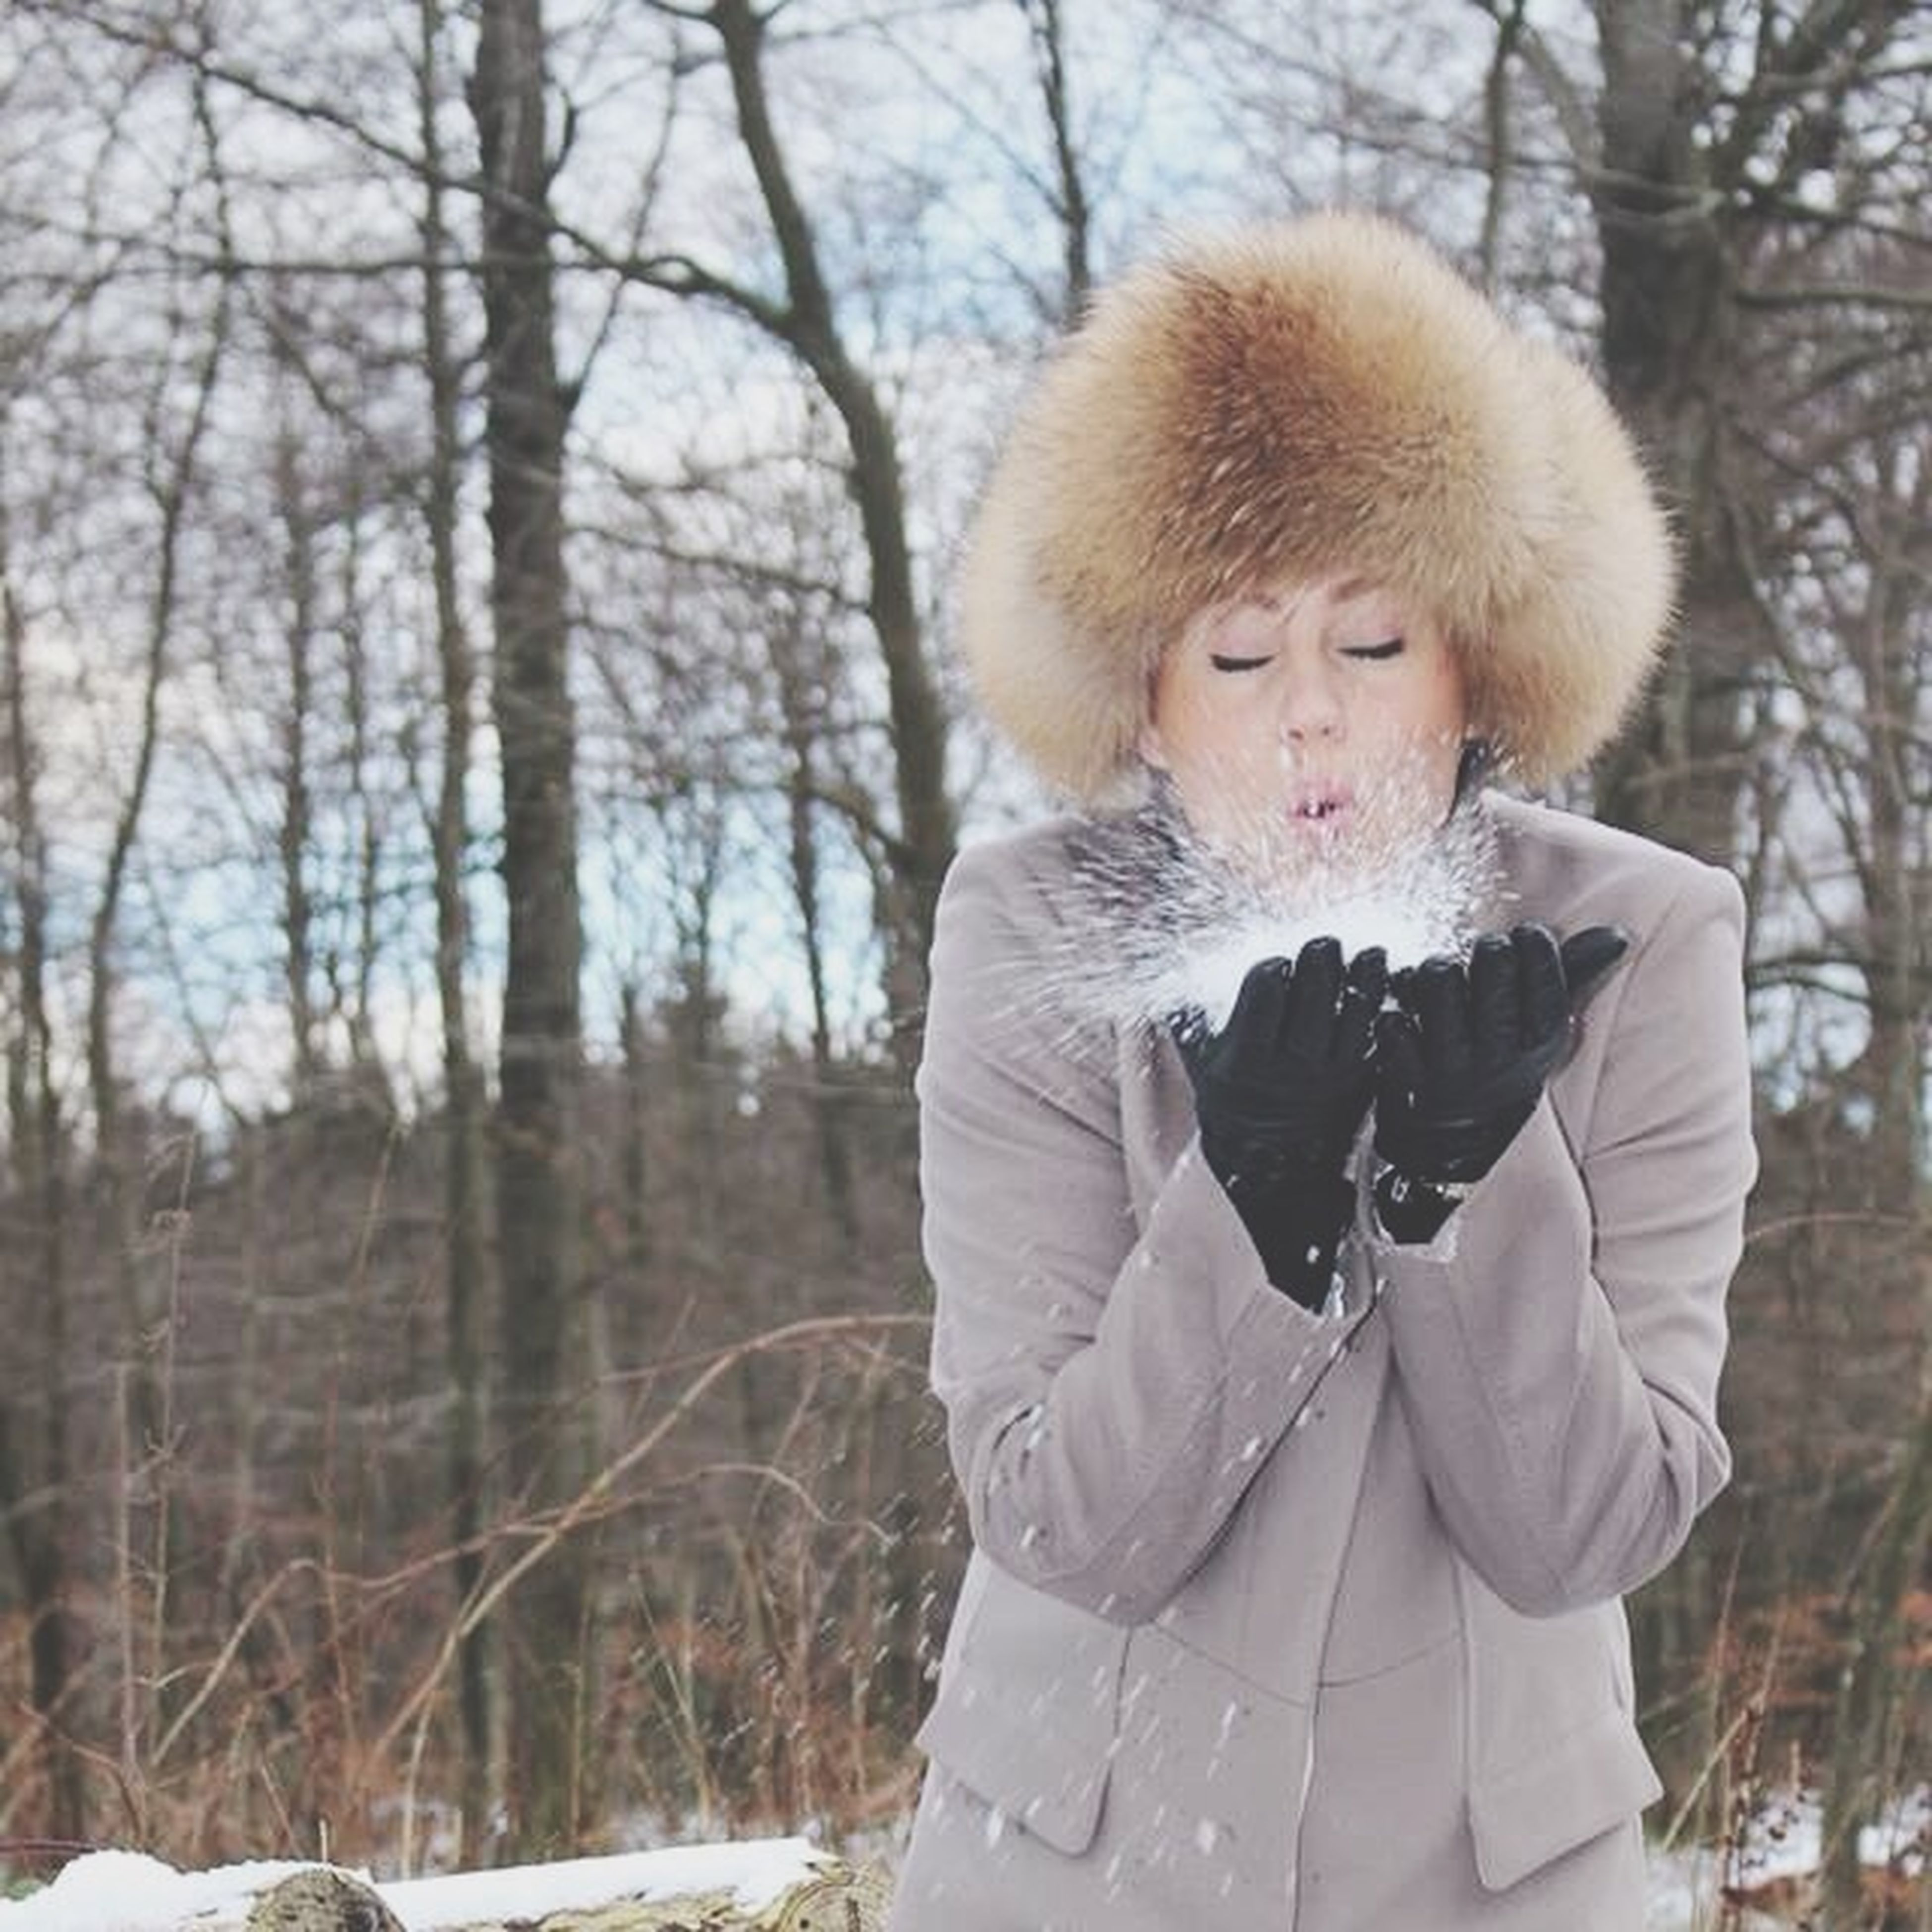 person, portrait, looking at camera, casual clothing, front view, lifestyles, young adult, tree, waist up, winter, leisure activity, focus on foreground, warm clothing, three quarter length, standing, smiling, cold temperature, forest